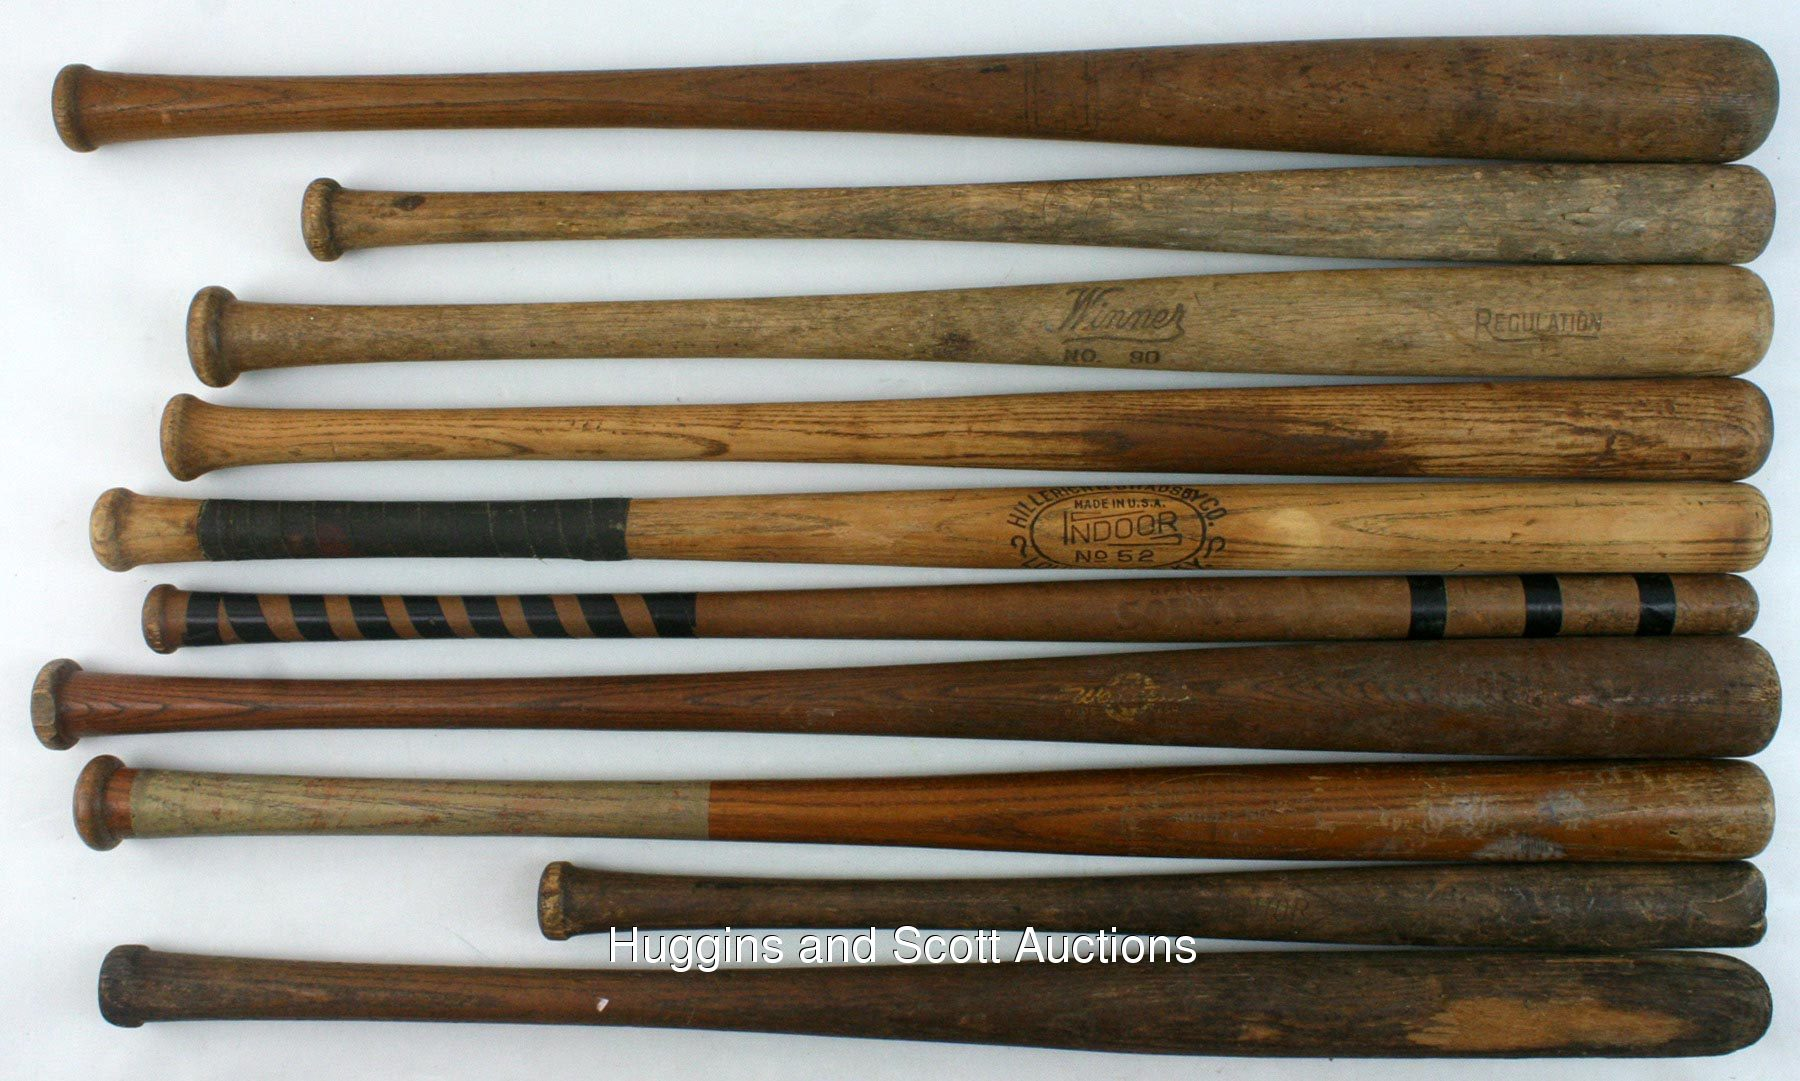 Vintage Baseball Equipment Lot With 10 Bats And 2 Gloves